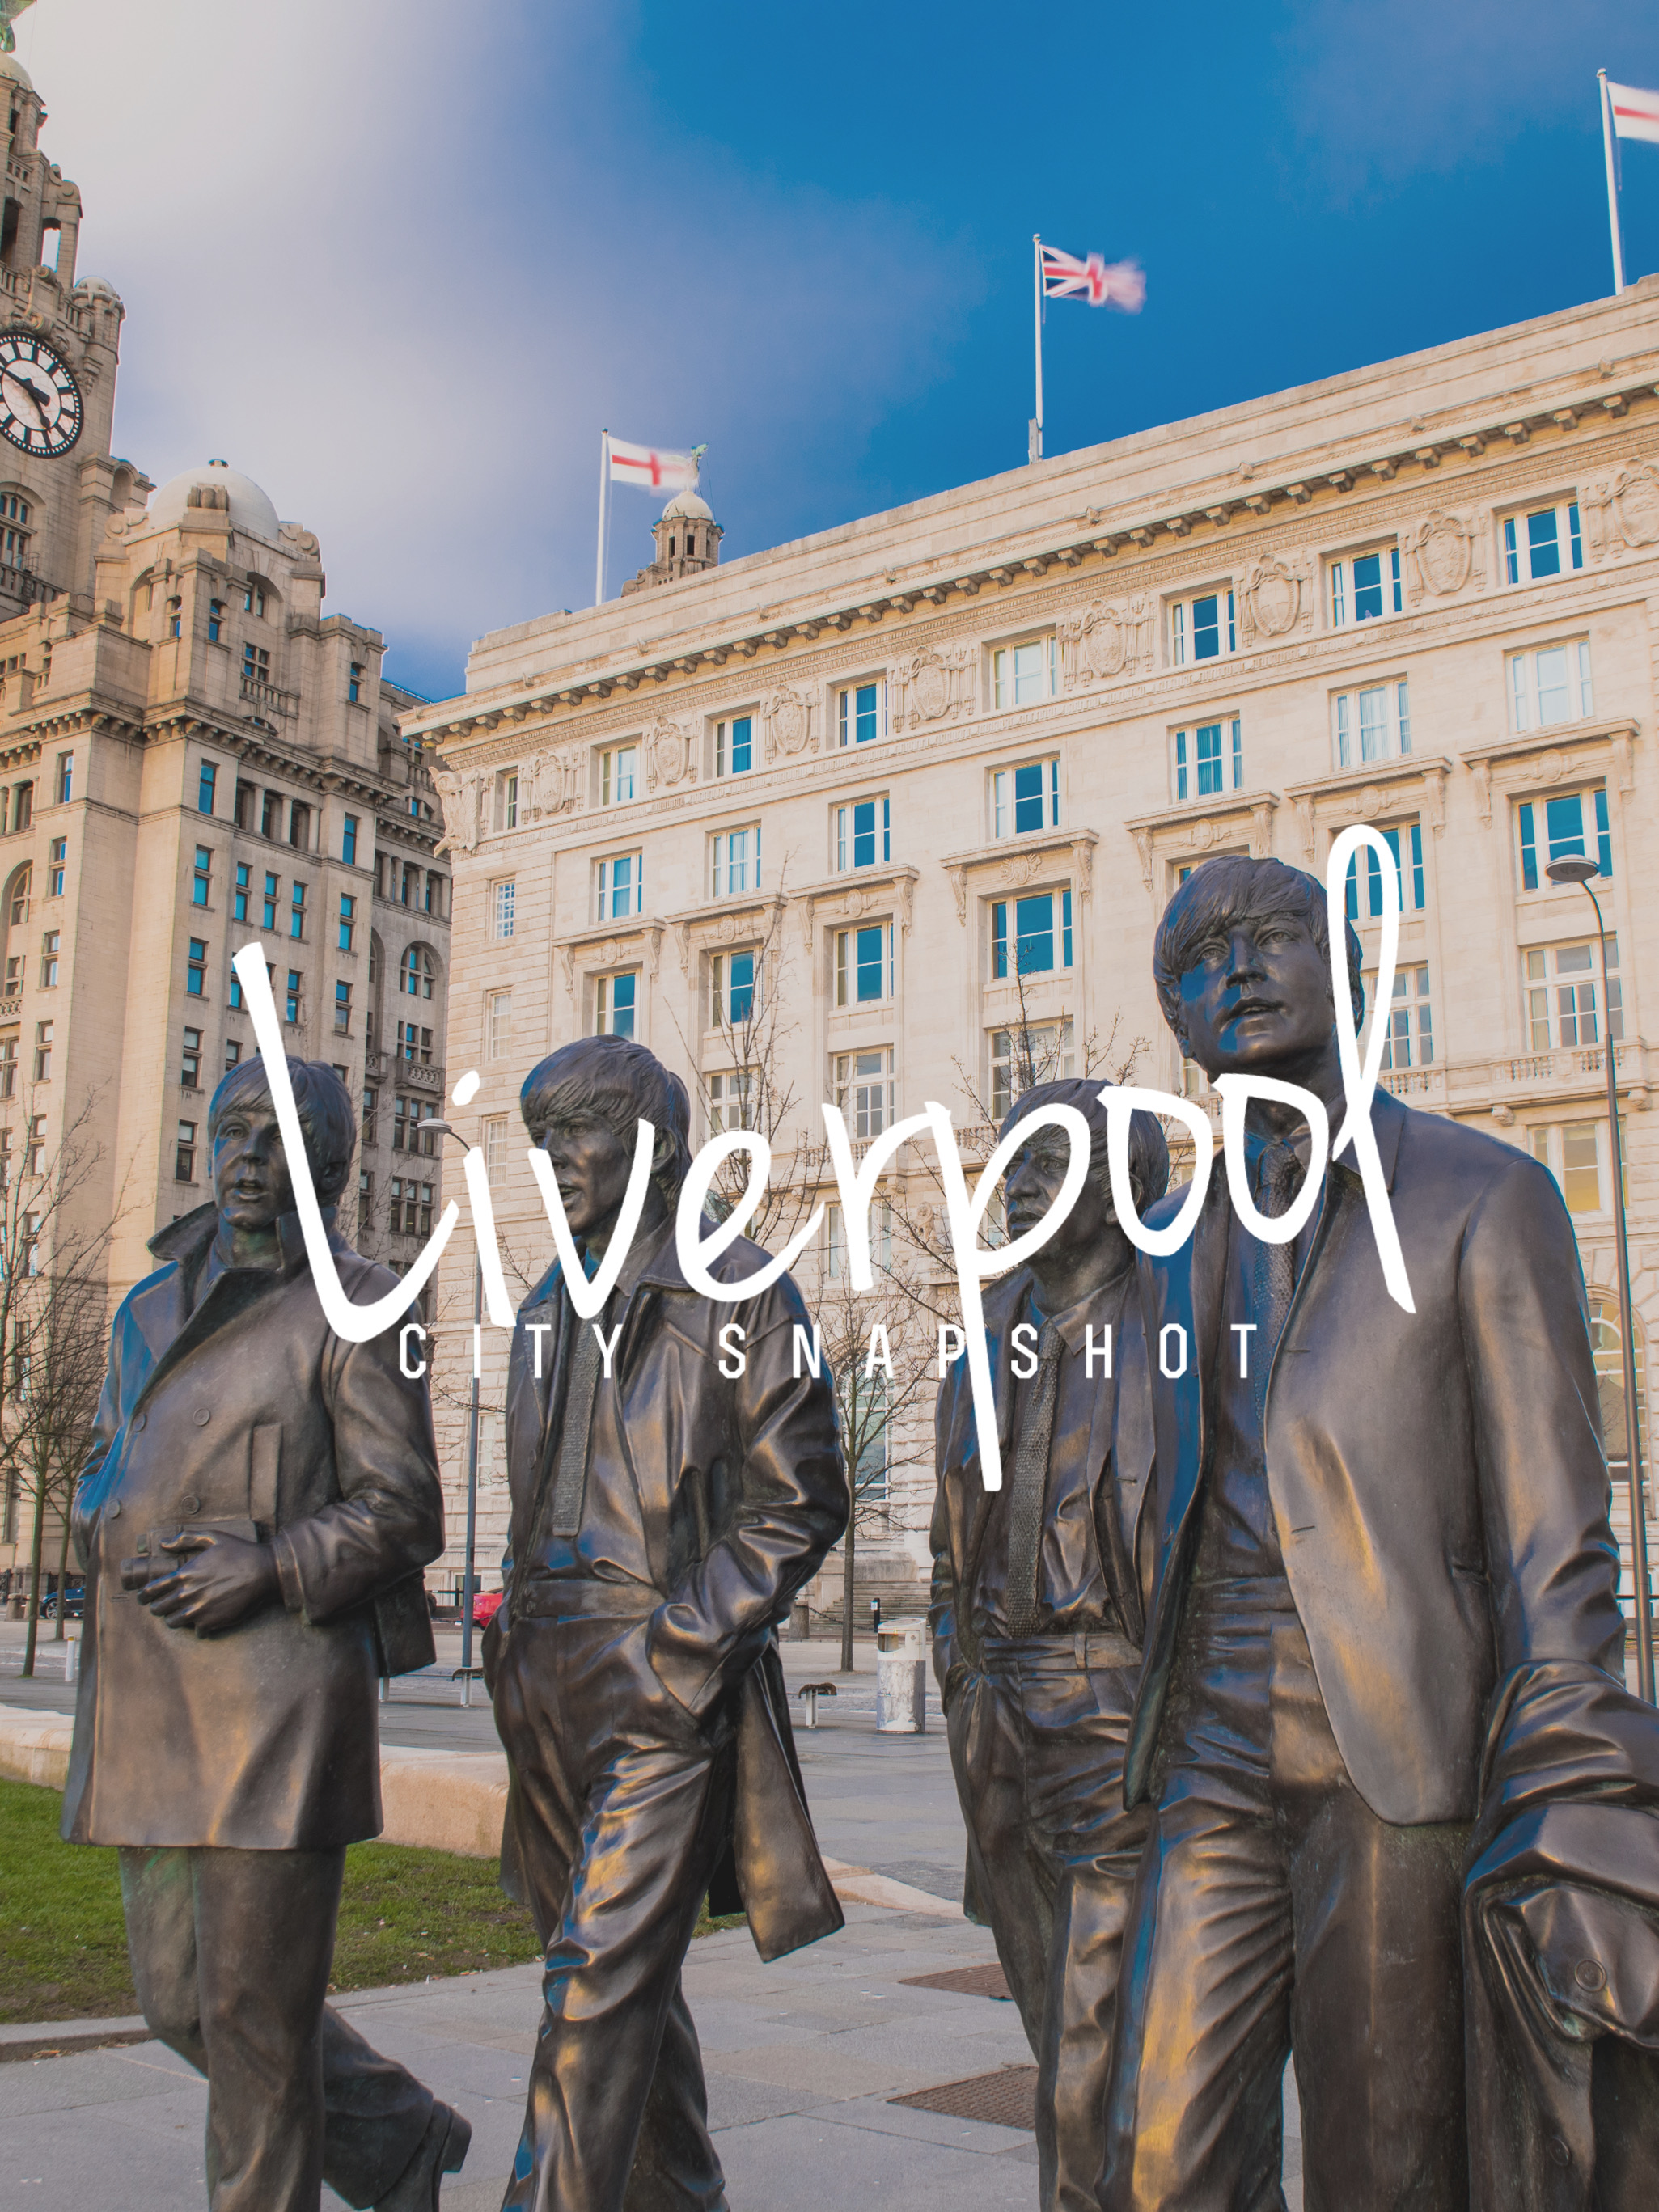 A City Snapshot of Liverpool in a Day